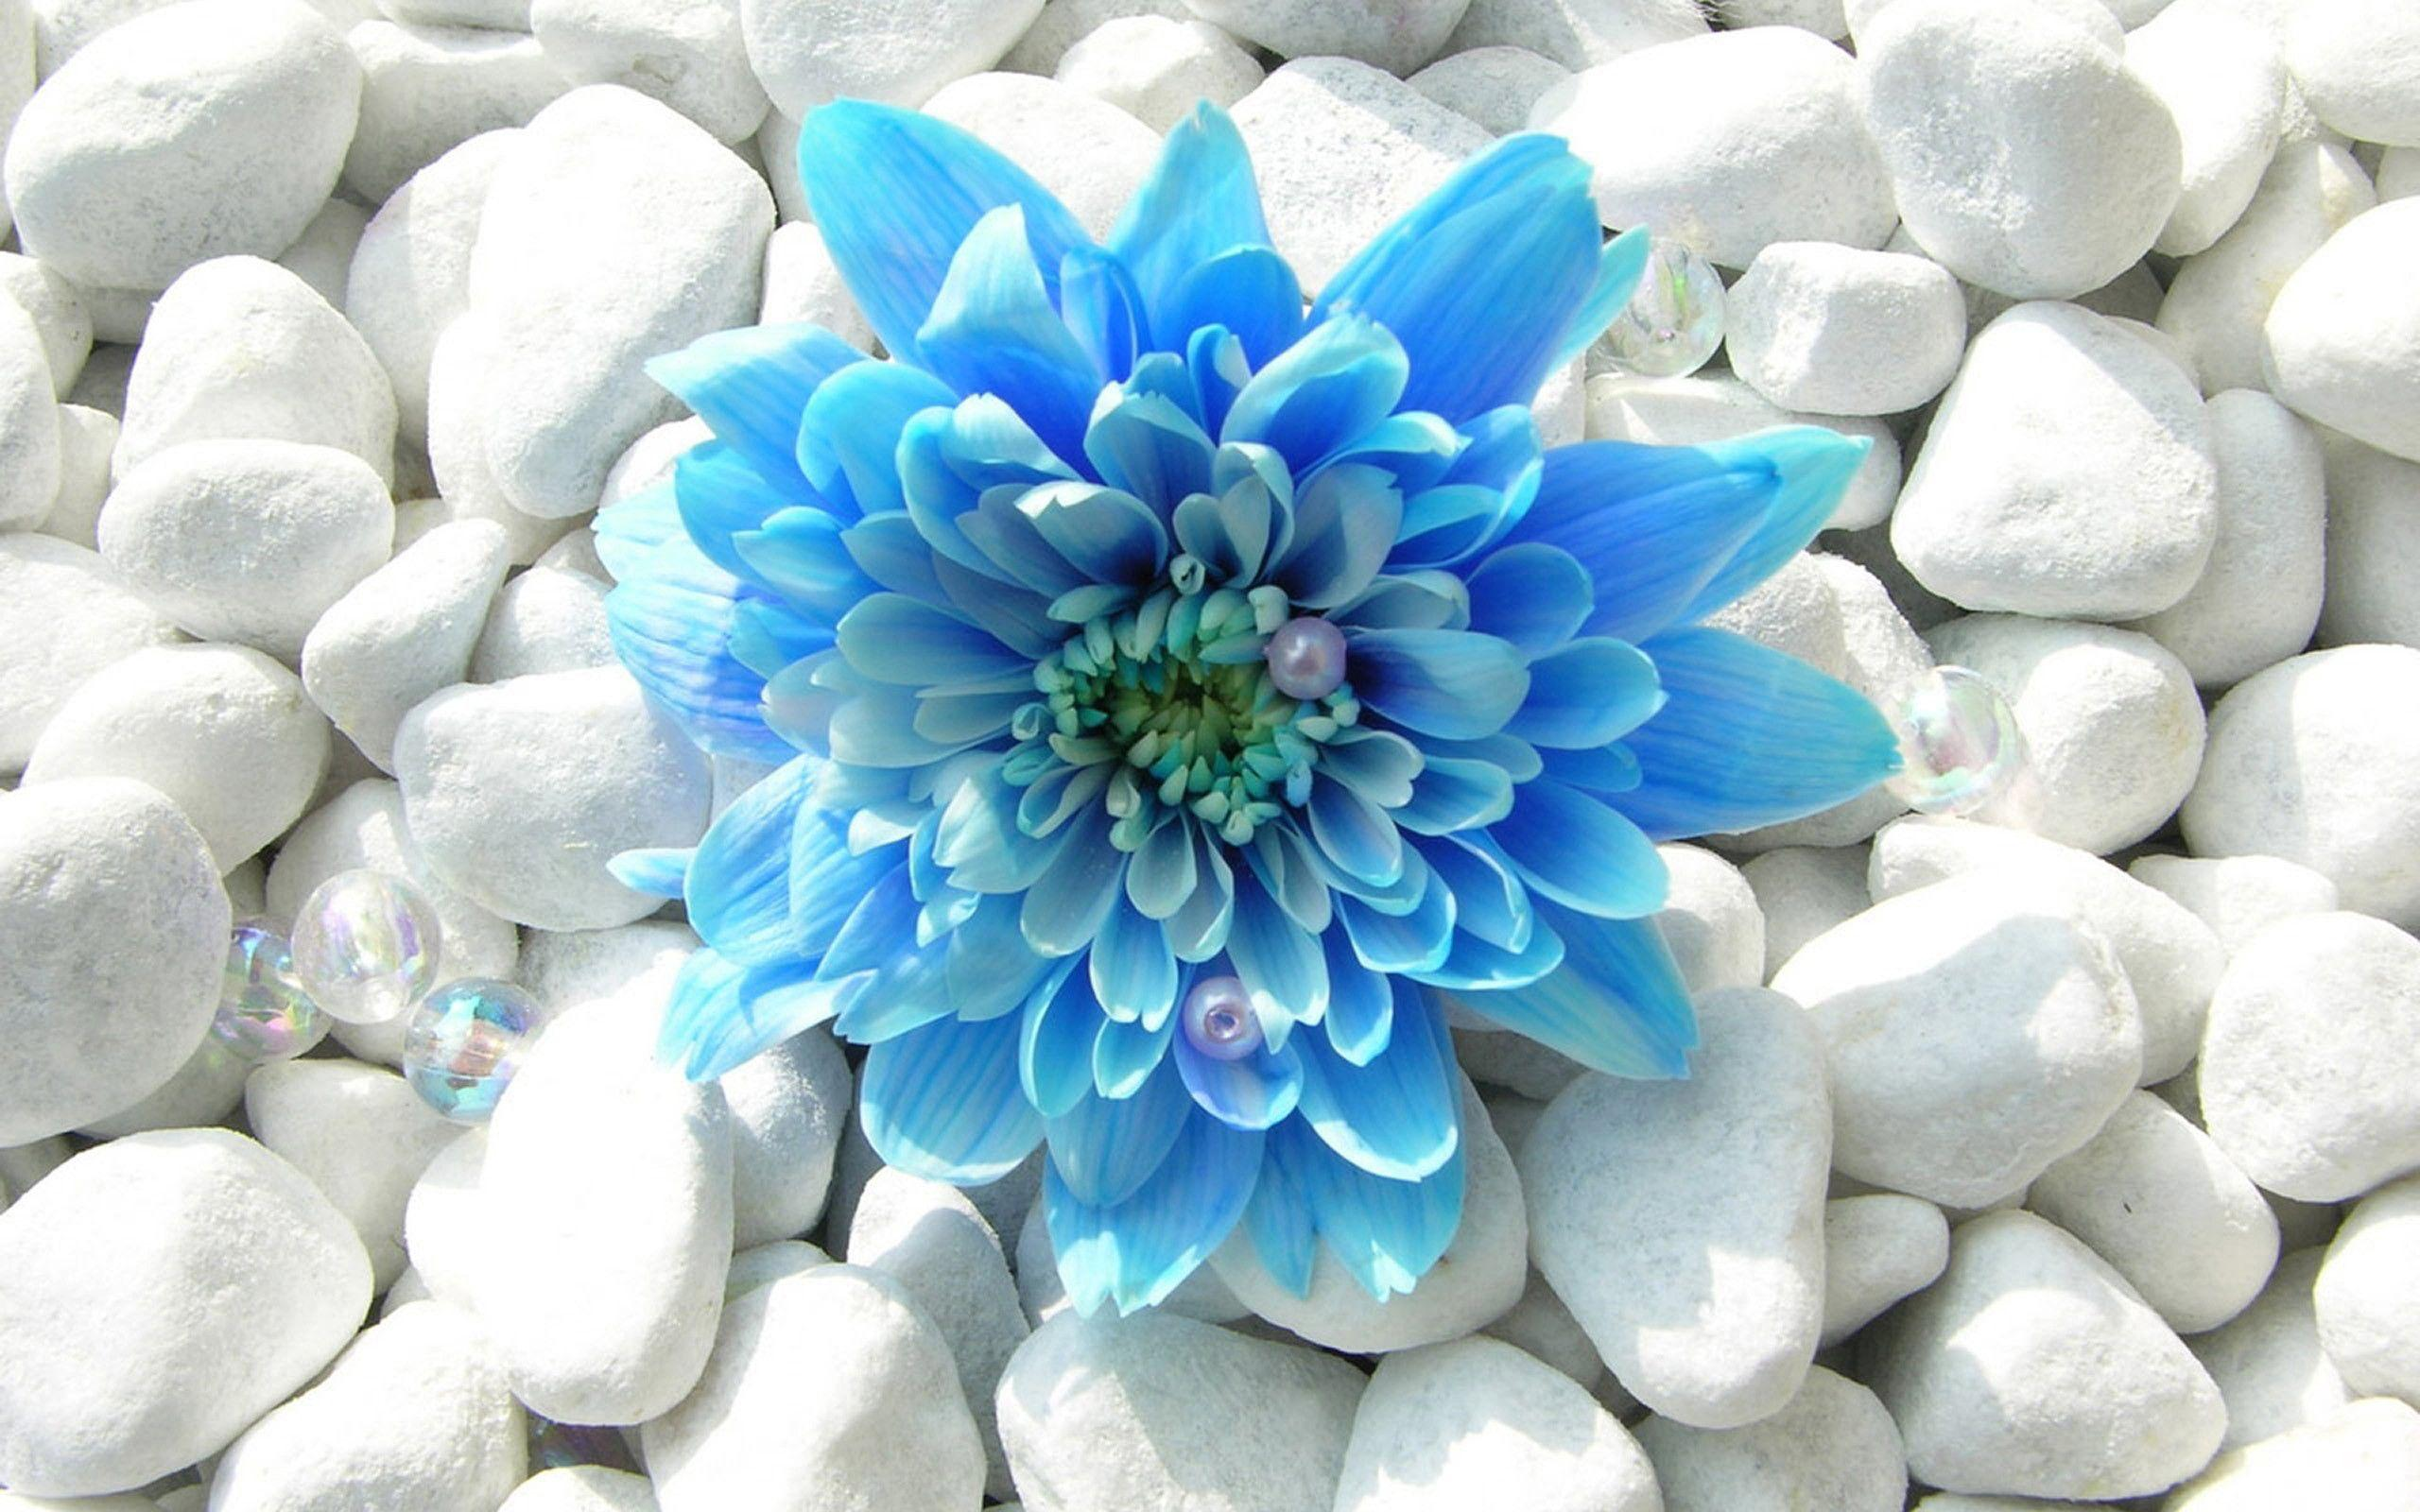 Blue Flower Desktop Wallpaper, wallpaper, Blue Flower Desktop ...